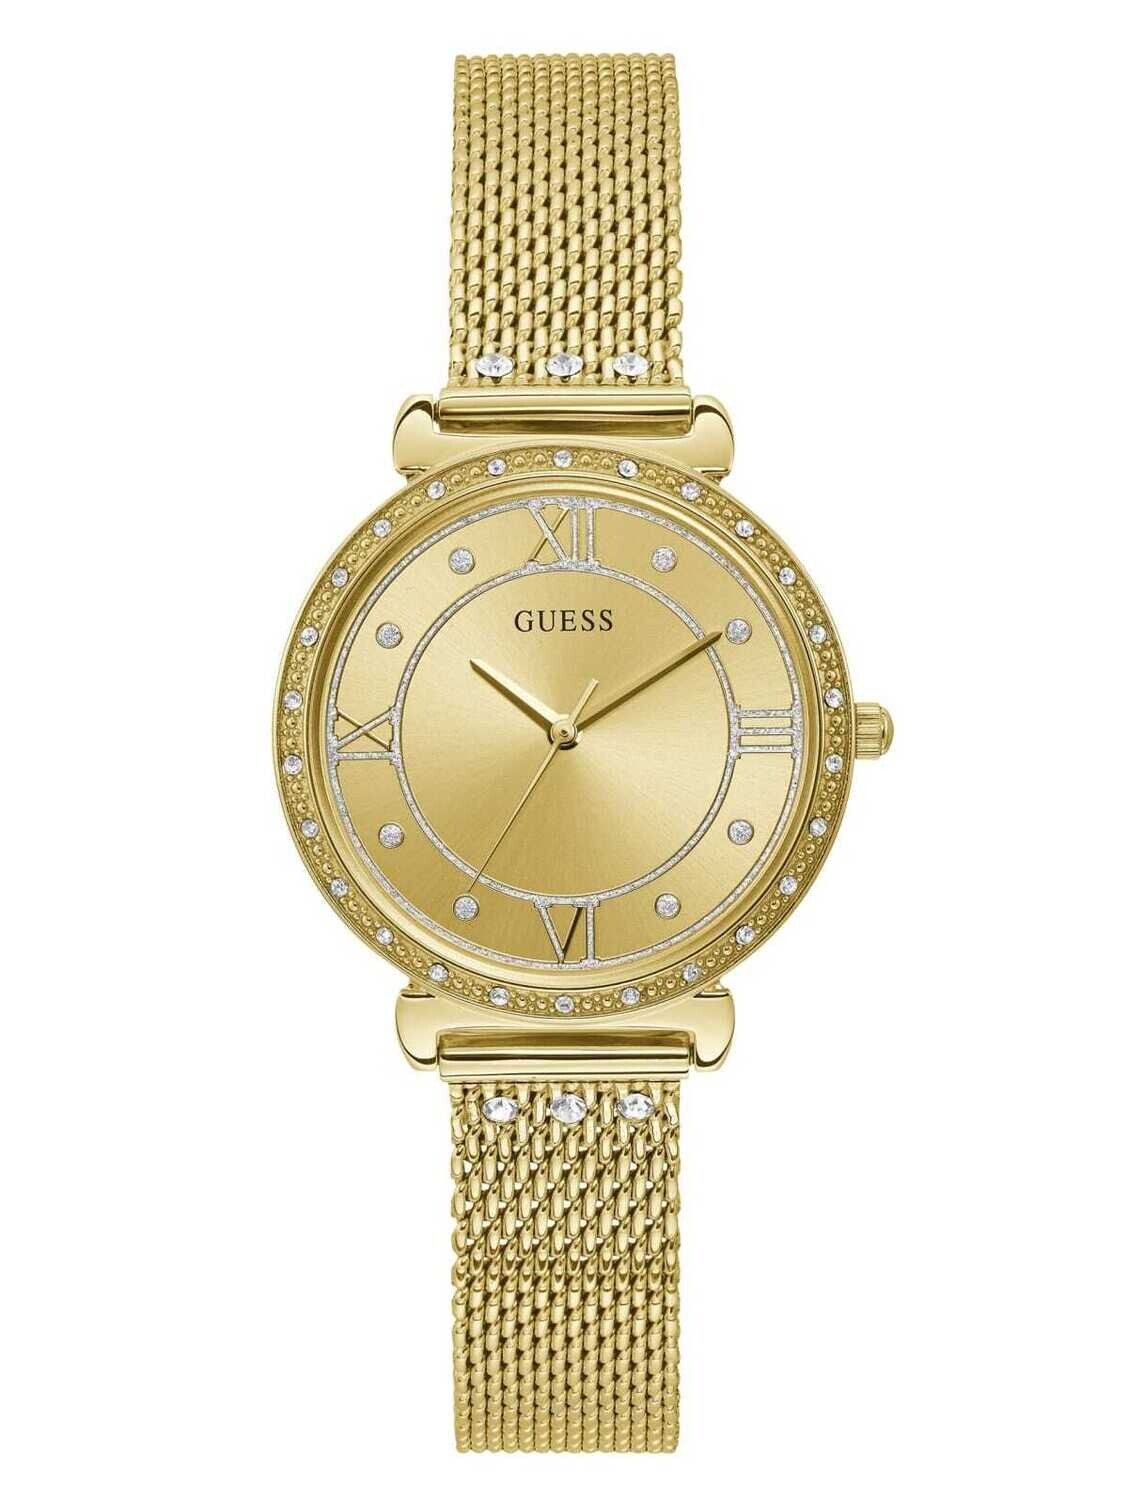 GUESS LDS WATCH GOLD TONE